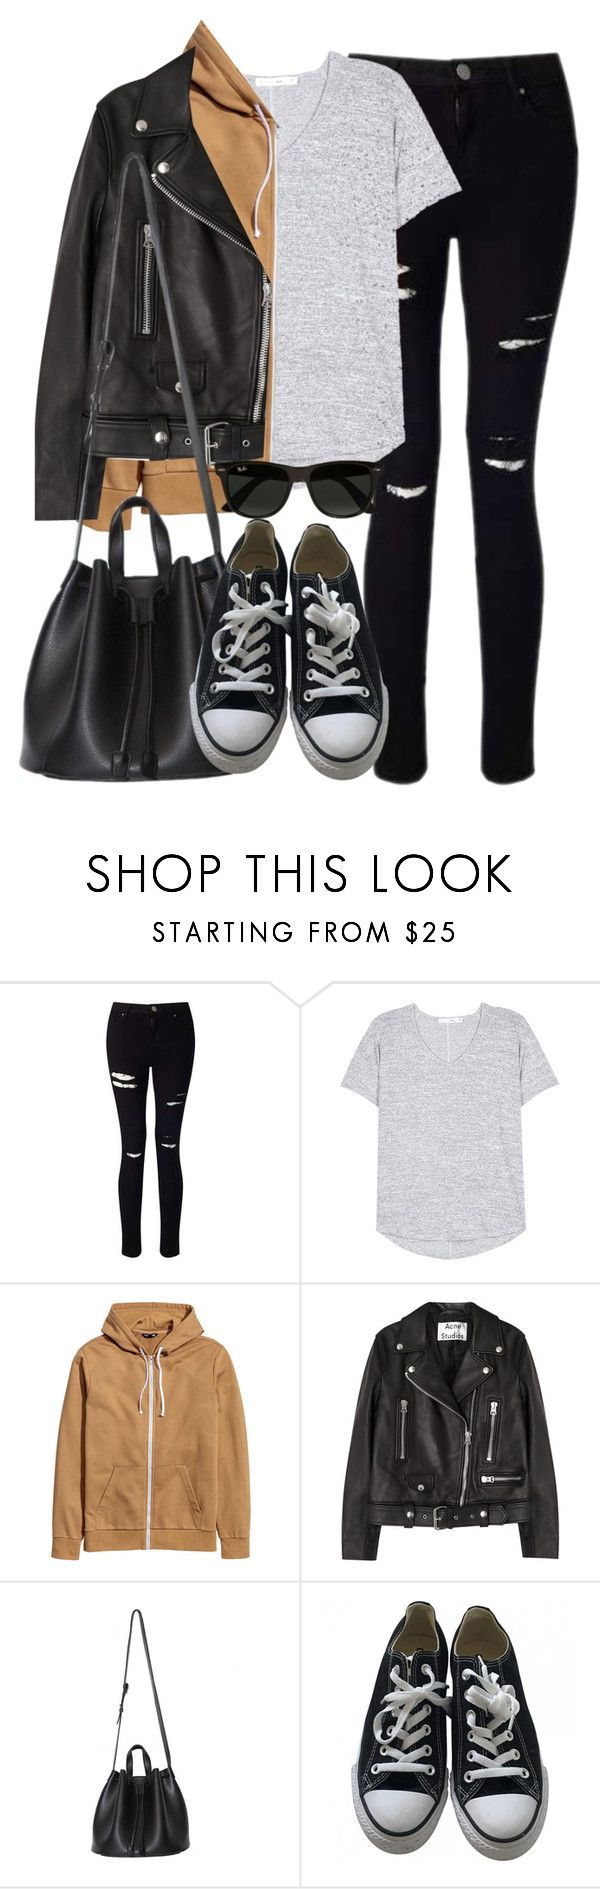 """Style #11513"" by vany-alvarado ❤ liked on Polyvore featuring Miss Selfridge, rag & bone, Acne Studios, Converse and Ray-Ban"